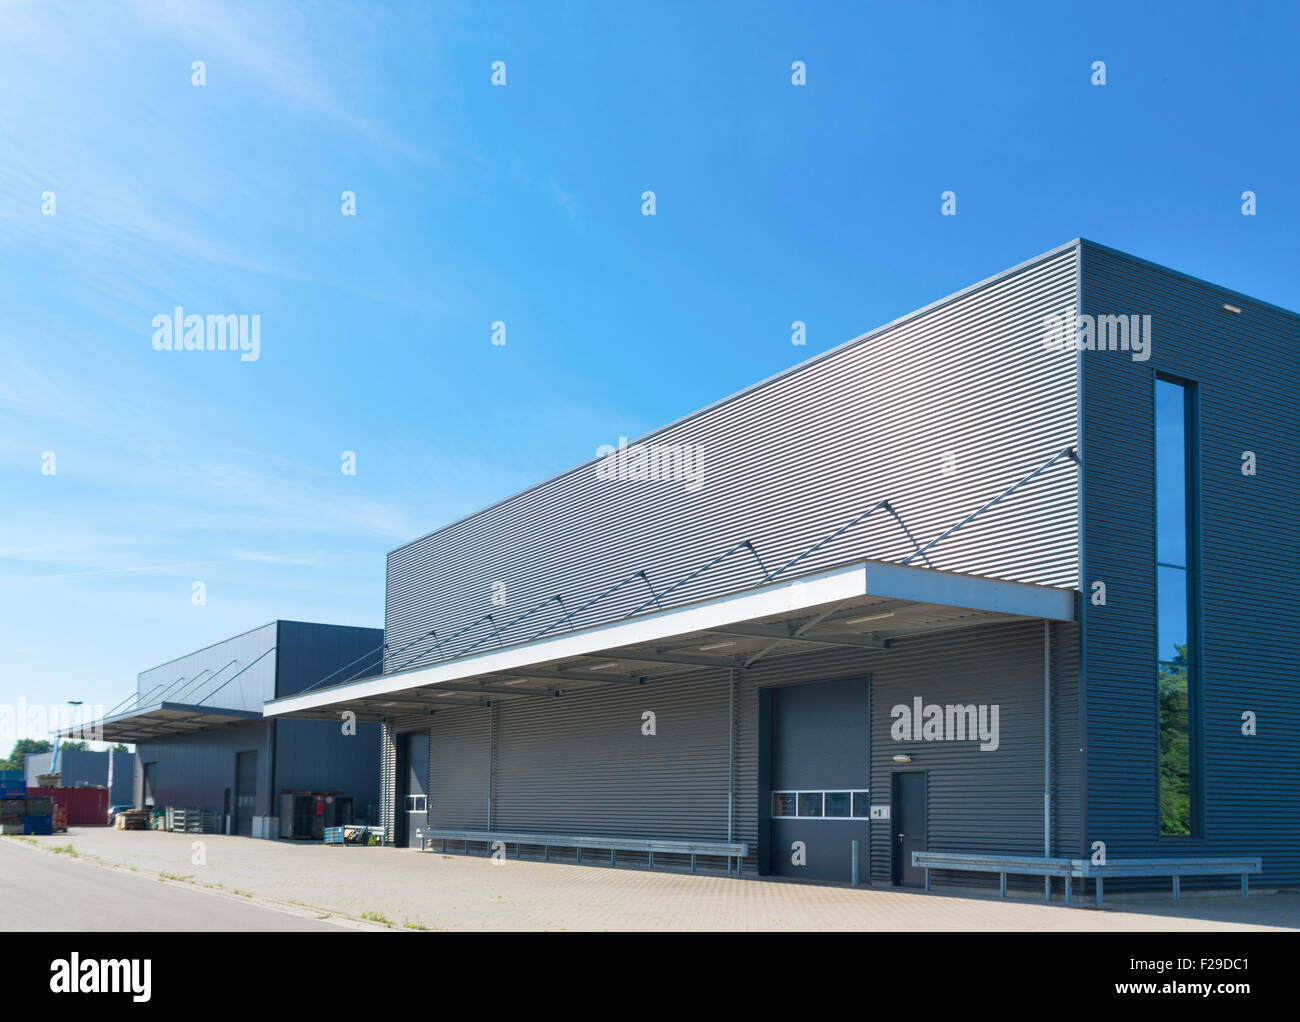 Exterior of a modern warehouse building against a blue sky for Warehouse building design